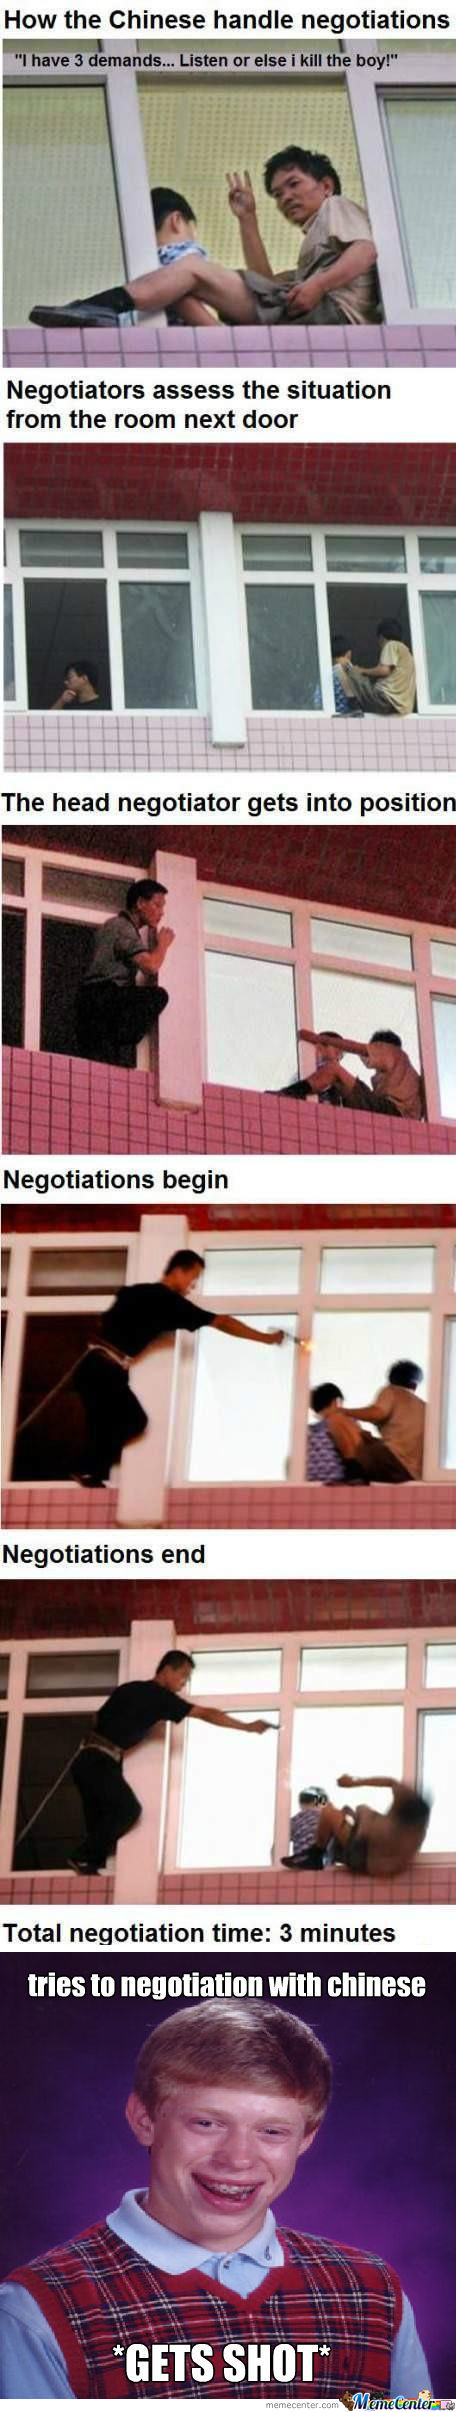 [RMX] Chinese Negotiations